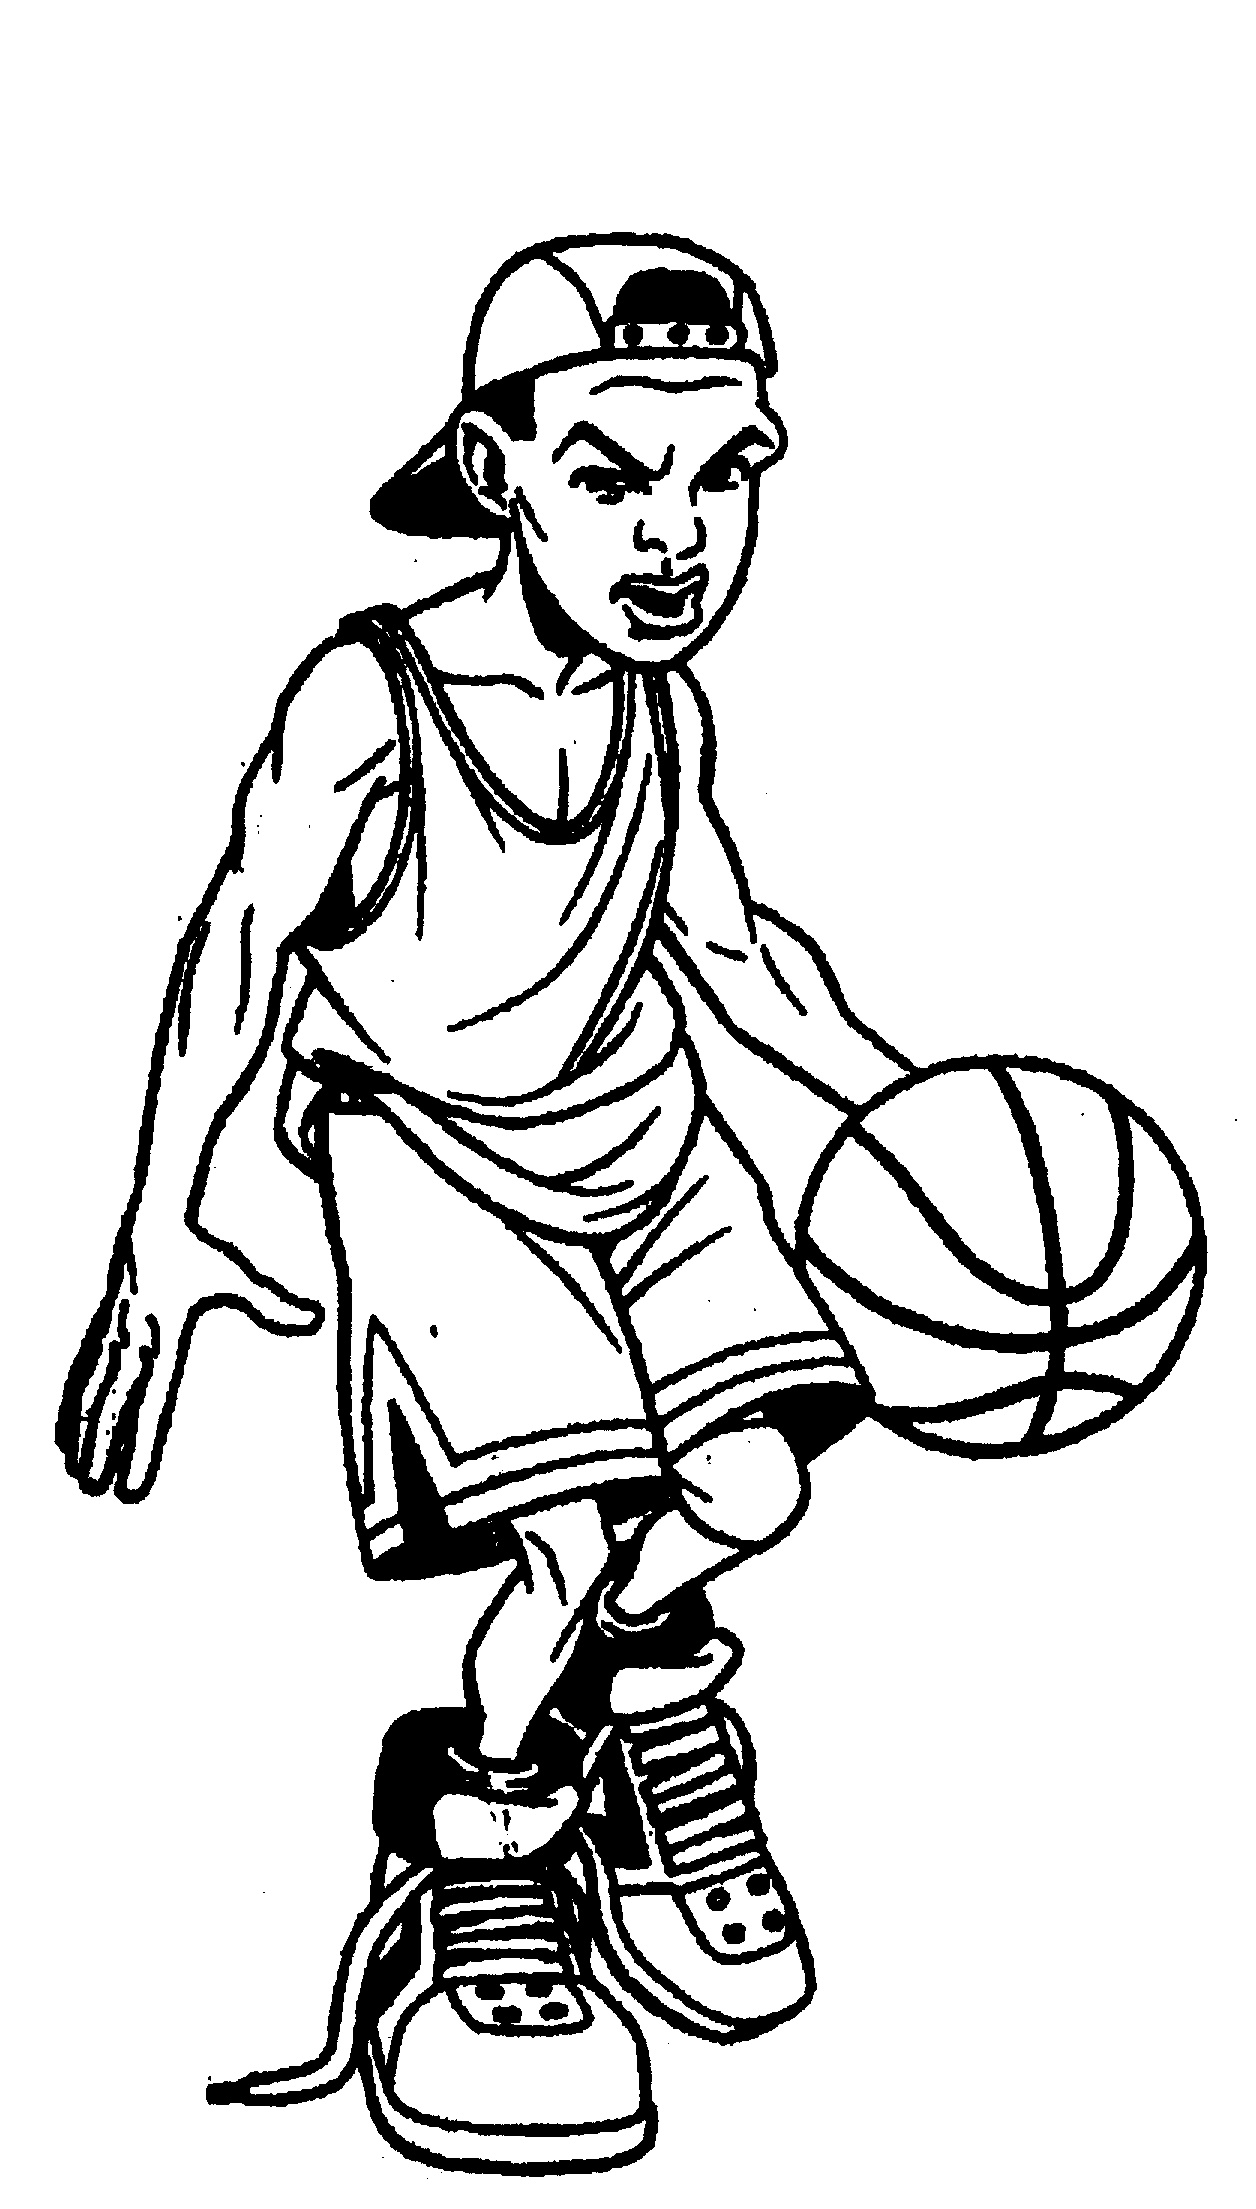 Images For > Cool Basketball Logos To Draw